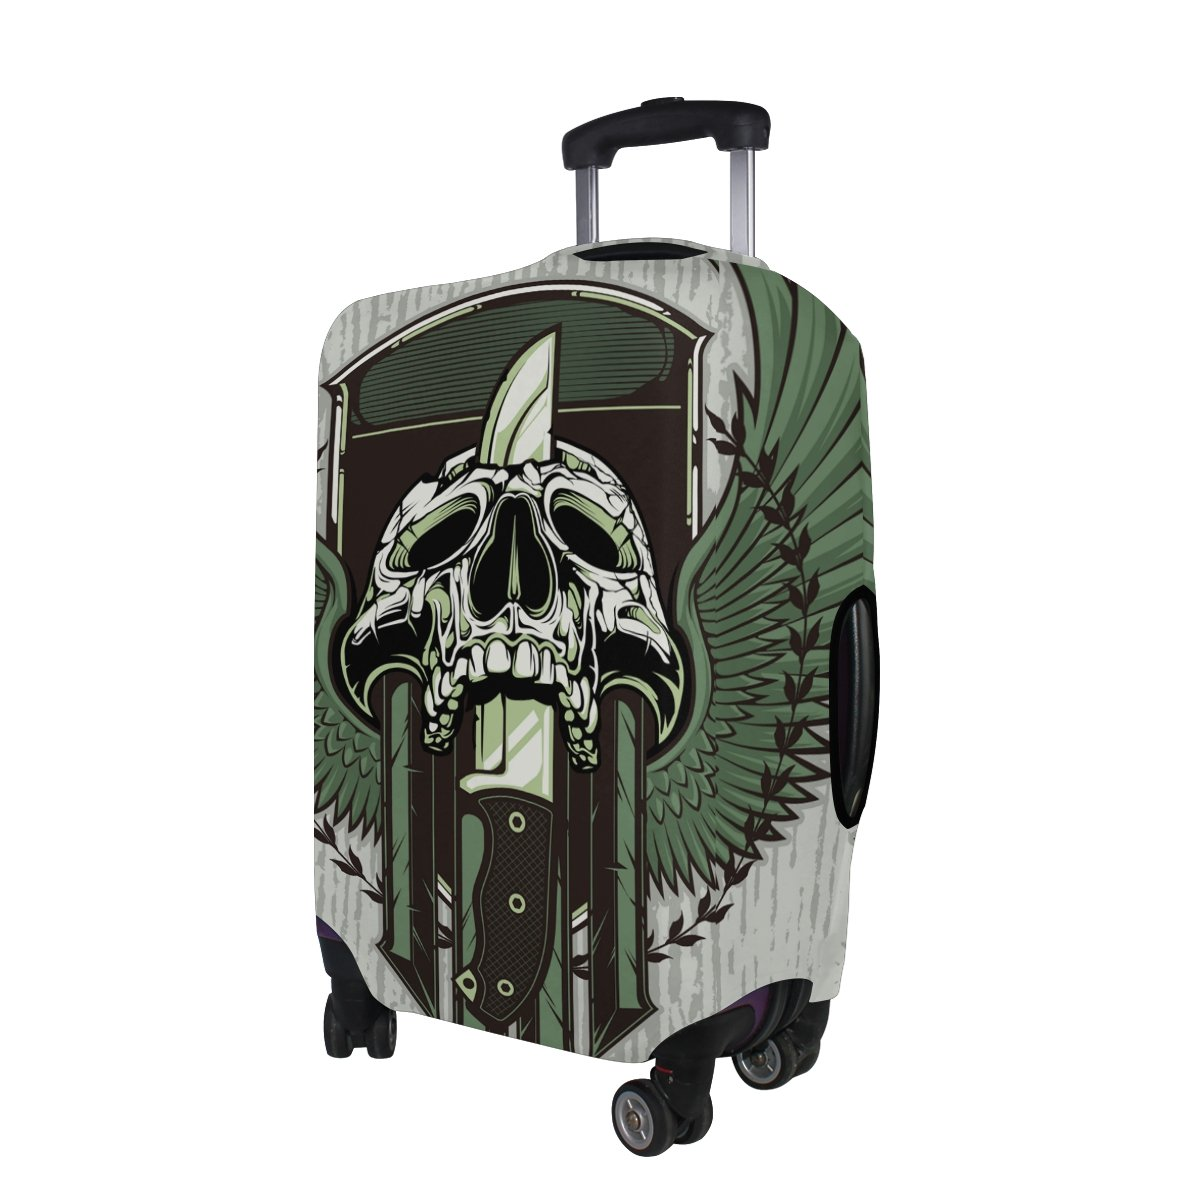 Punk Skull Travel Luggage Protector Baggage Suitcase Cover Fits 29-32 Inch Luggage by CoolPrintAll (Image #4)